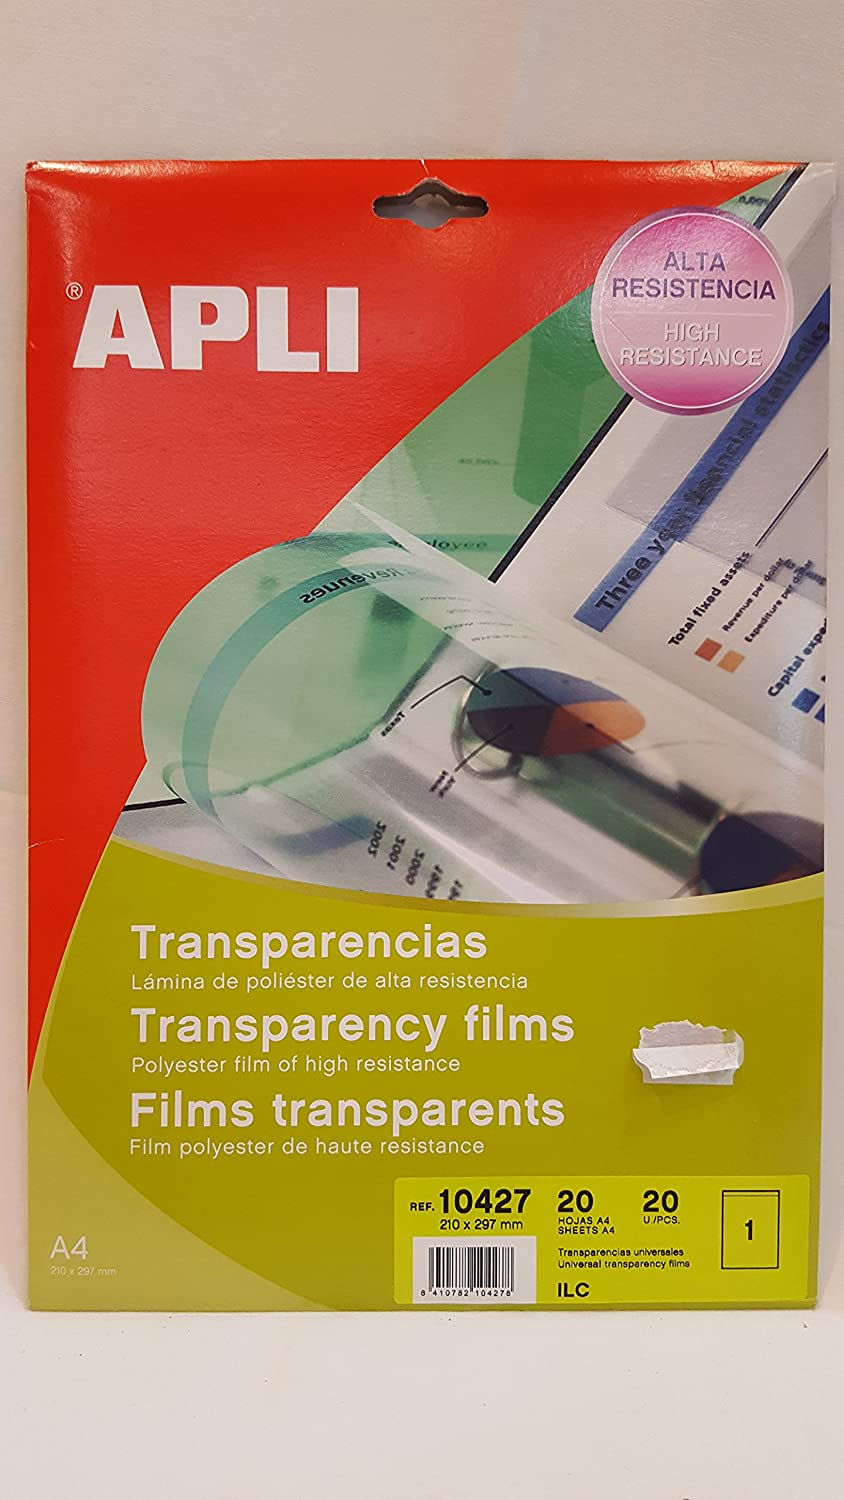 APLI Pochette 20 films transparents 210 x 297 mm Apli-Agipa 84705 10004787